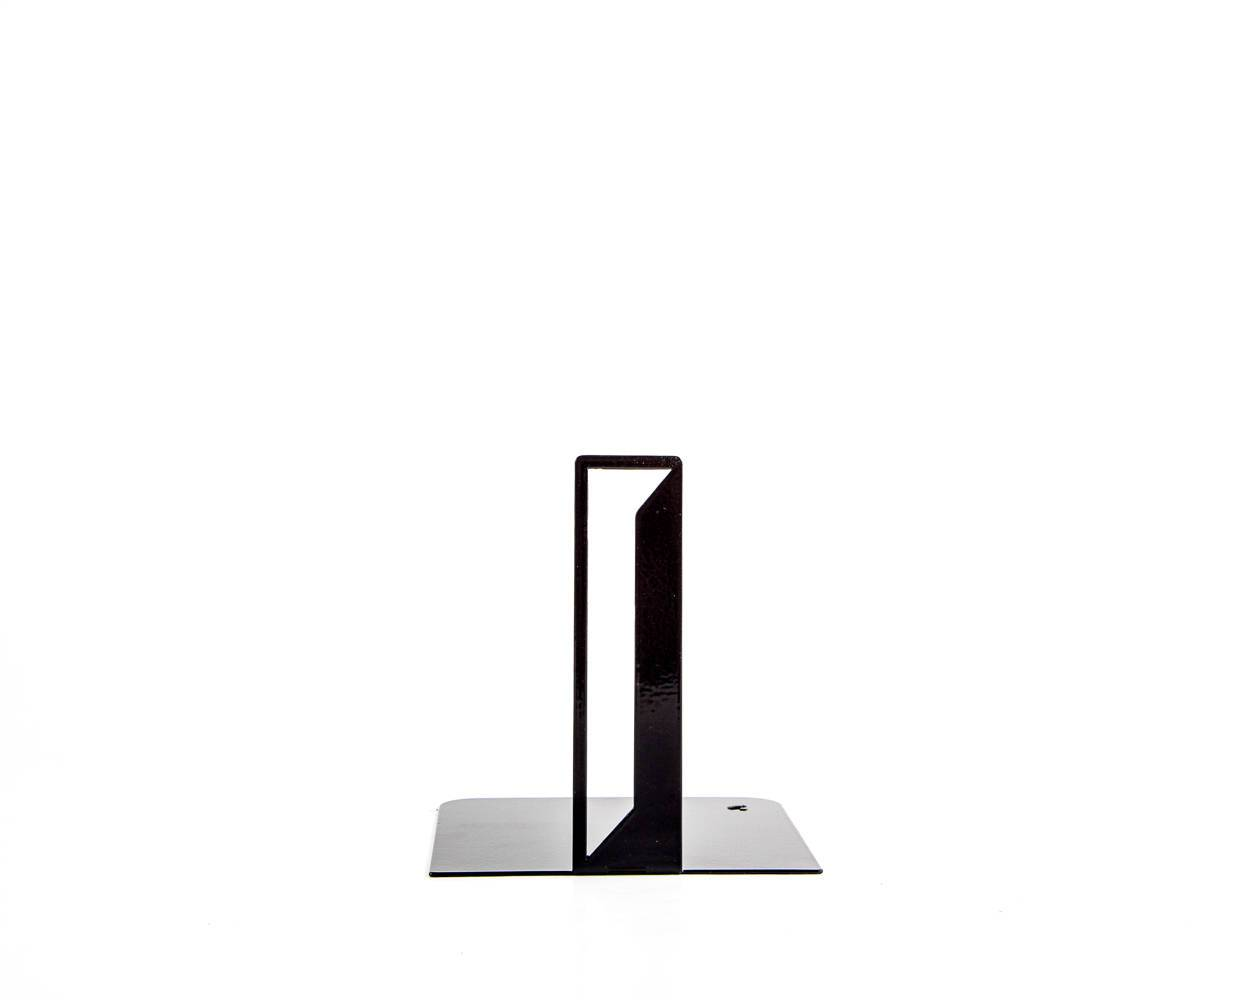 One metal bookend I -Letters are beautiful- alphabet series use to spell initials // secret message/anything meaningful to you/free shipping